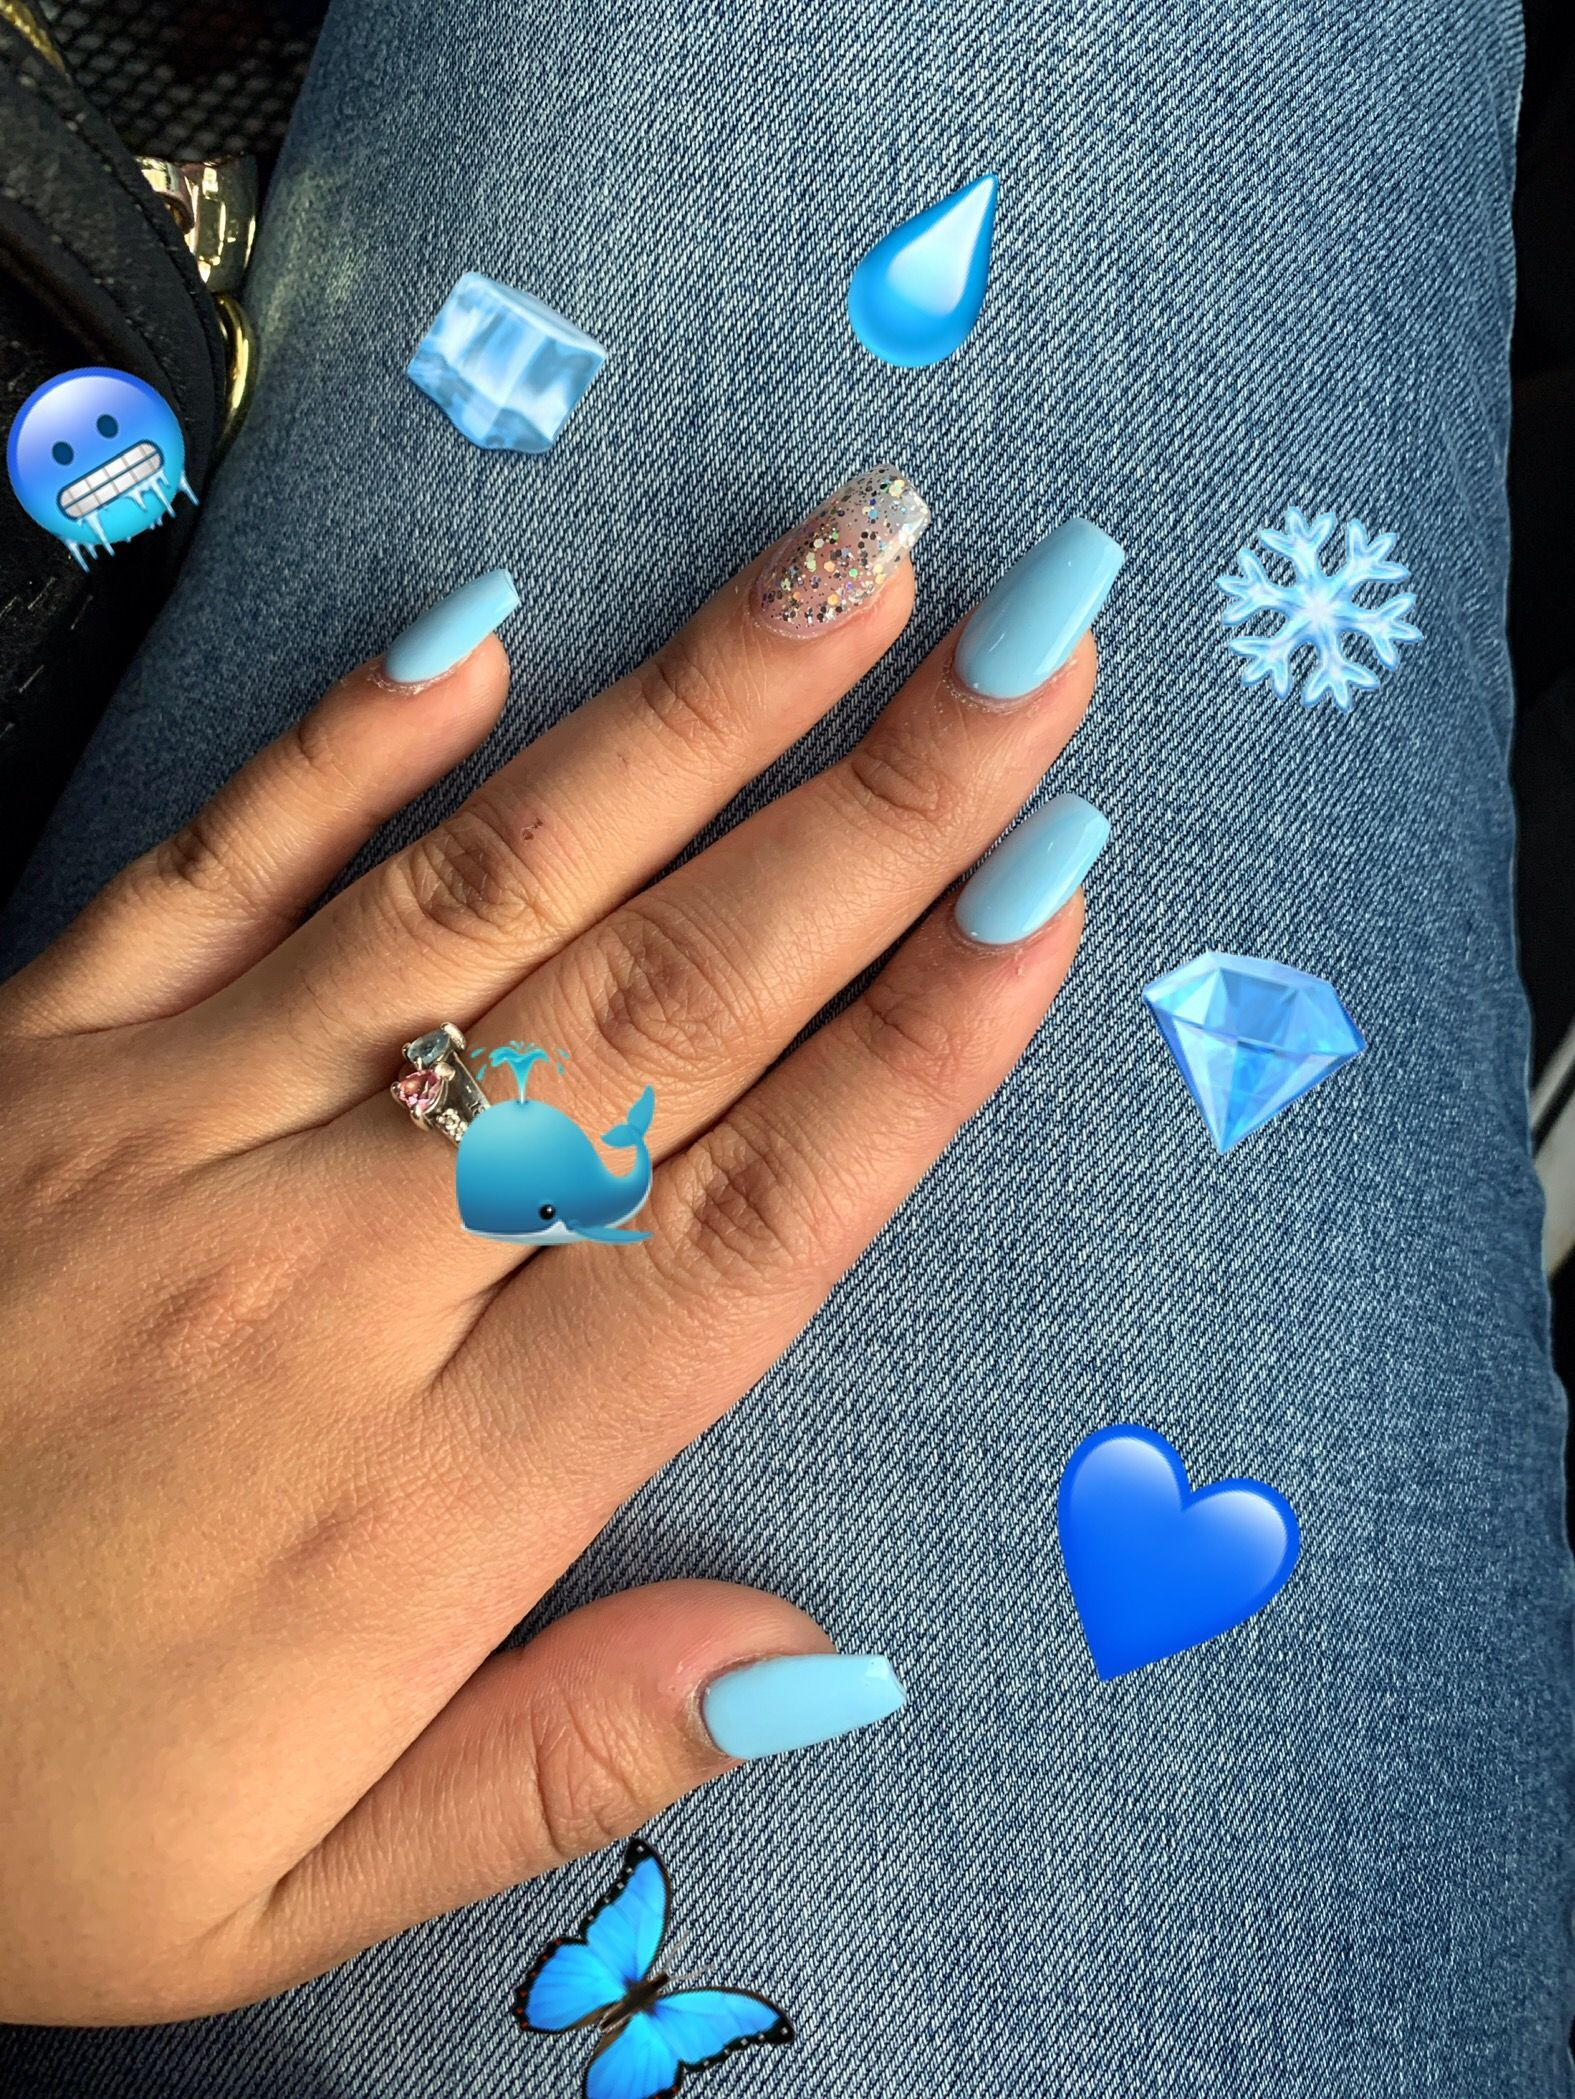 Light Blue Medium Length Coffin Shaped Nails In 2020 Coffin Shape Nails Acrylic Nails Coffin Pink Gold Acrylic Nails